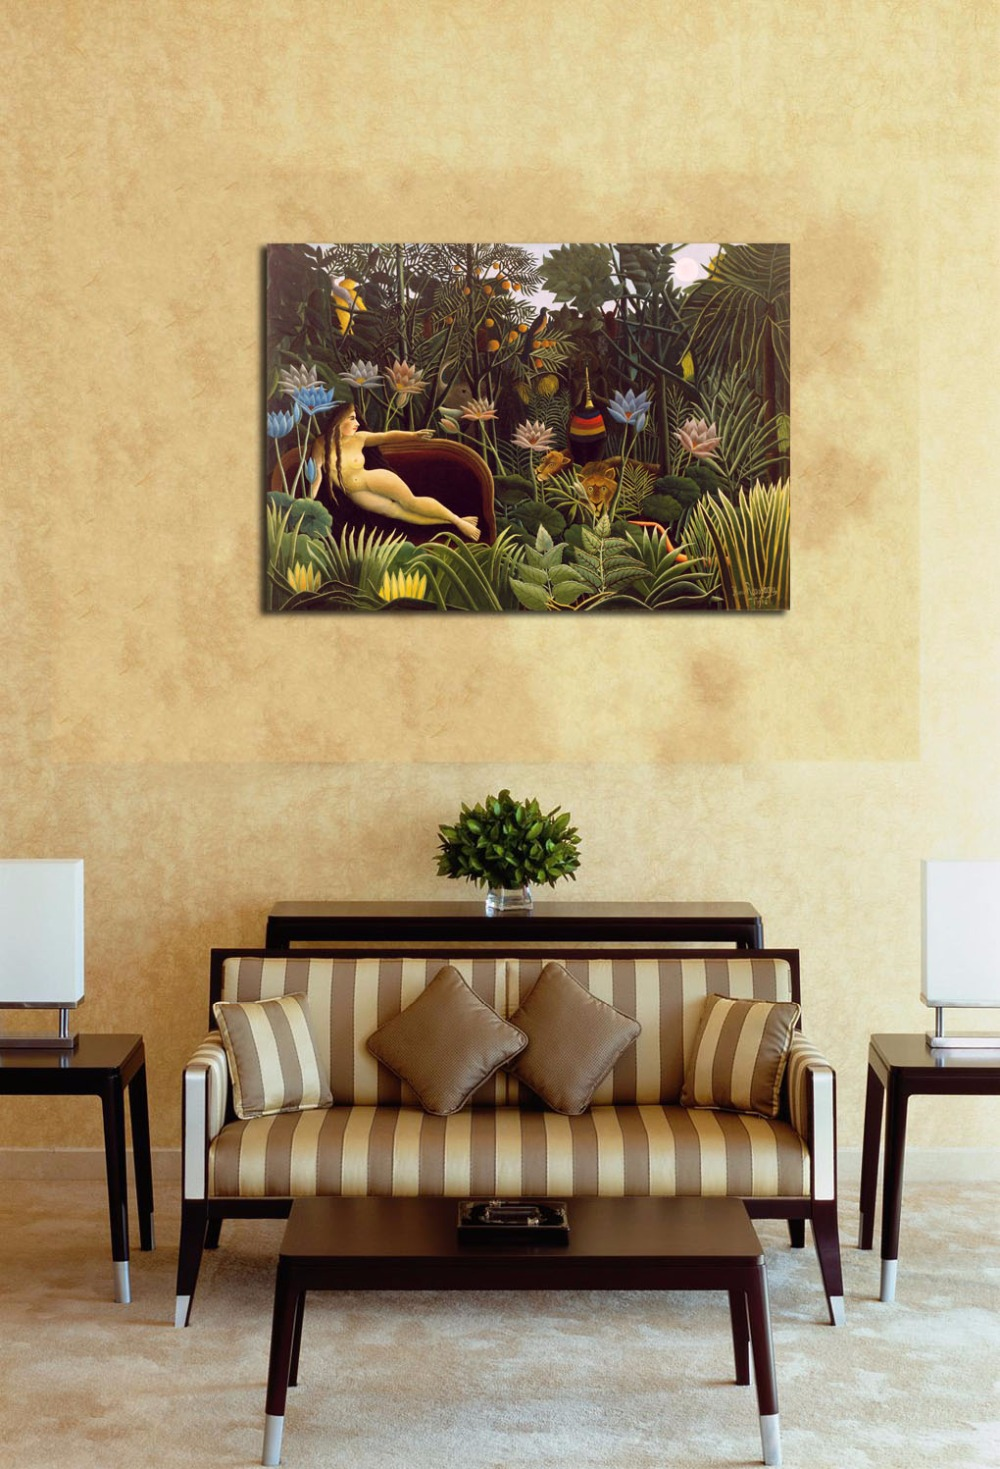 Aliexpress.com : Buy Nude Woman In Wild Forest Oil Painting Printed ...